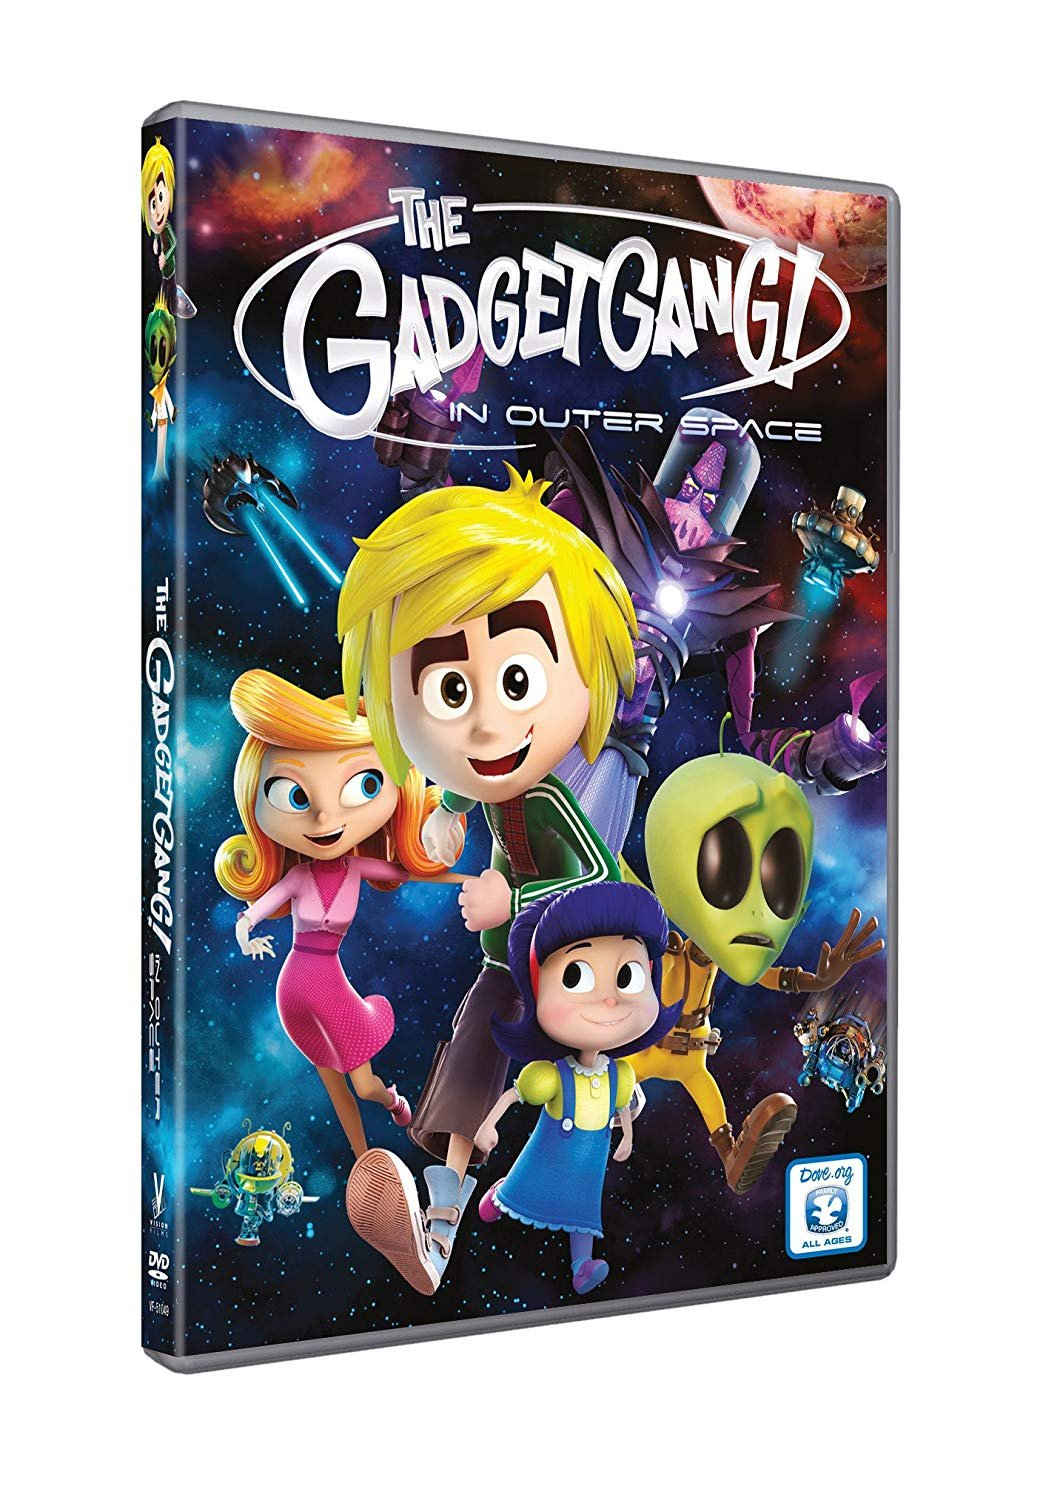 Gadgetgang in Outer Space (DVD) dv 003